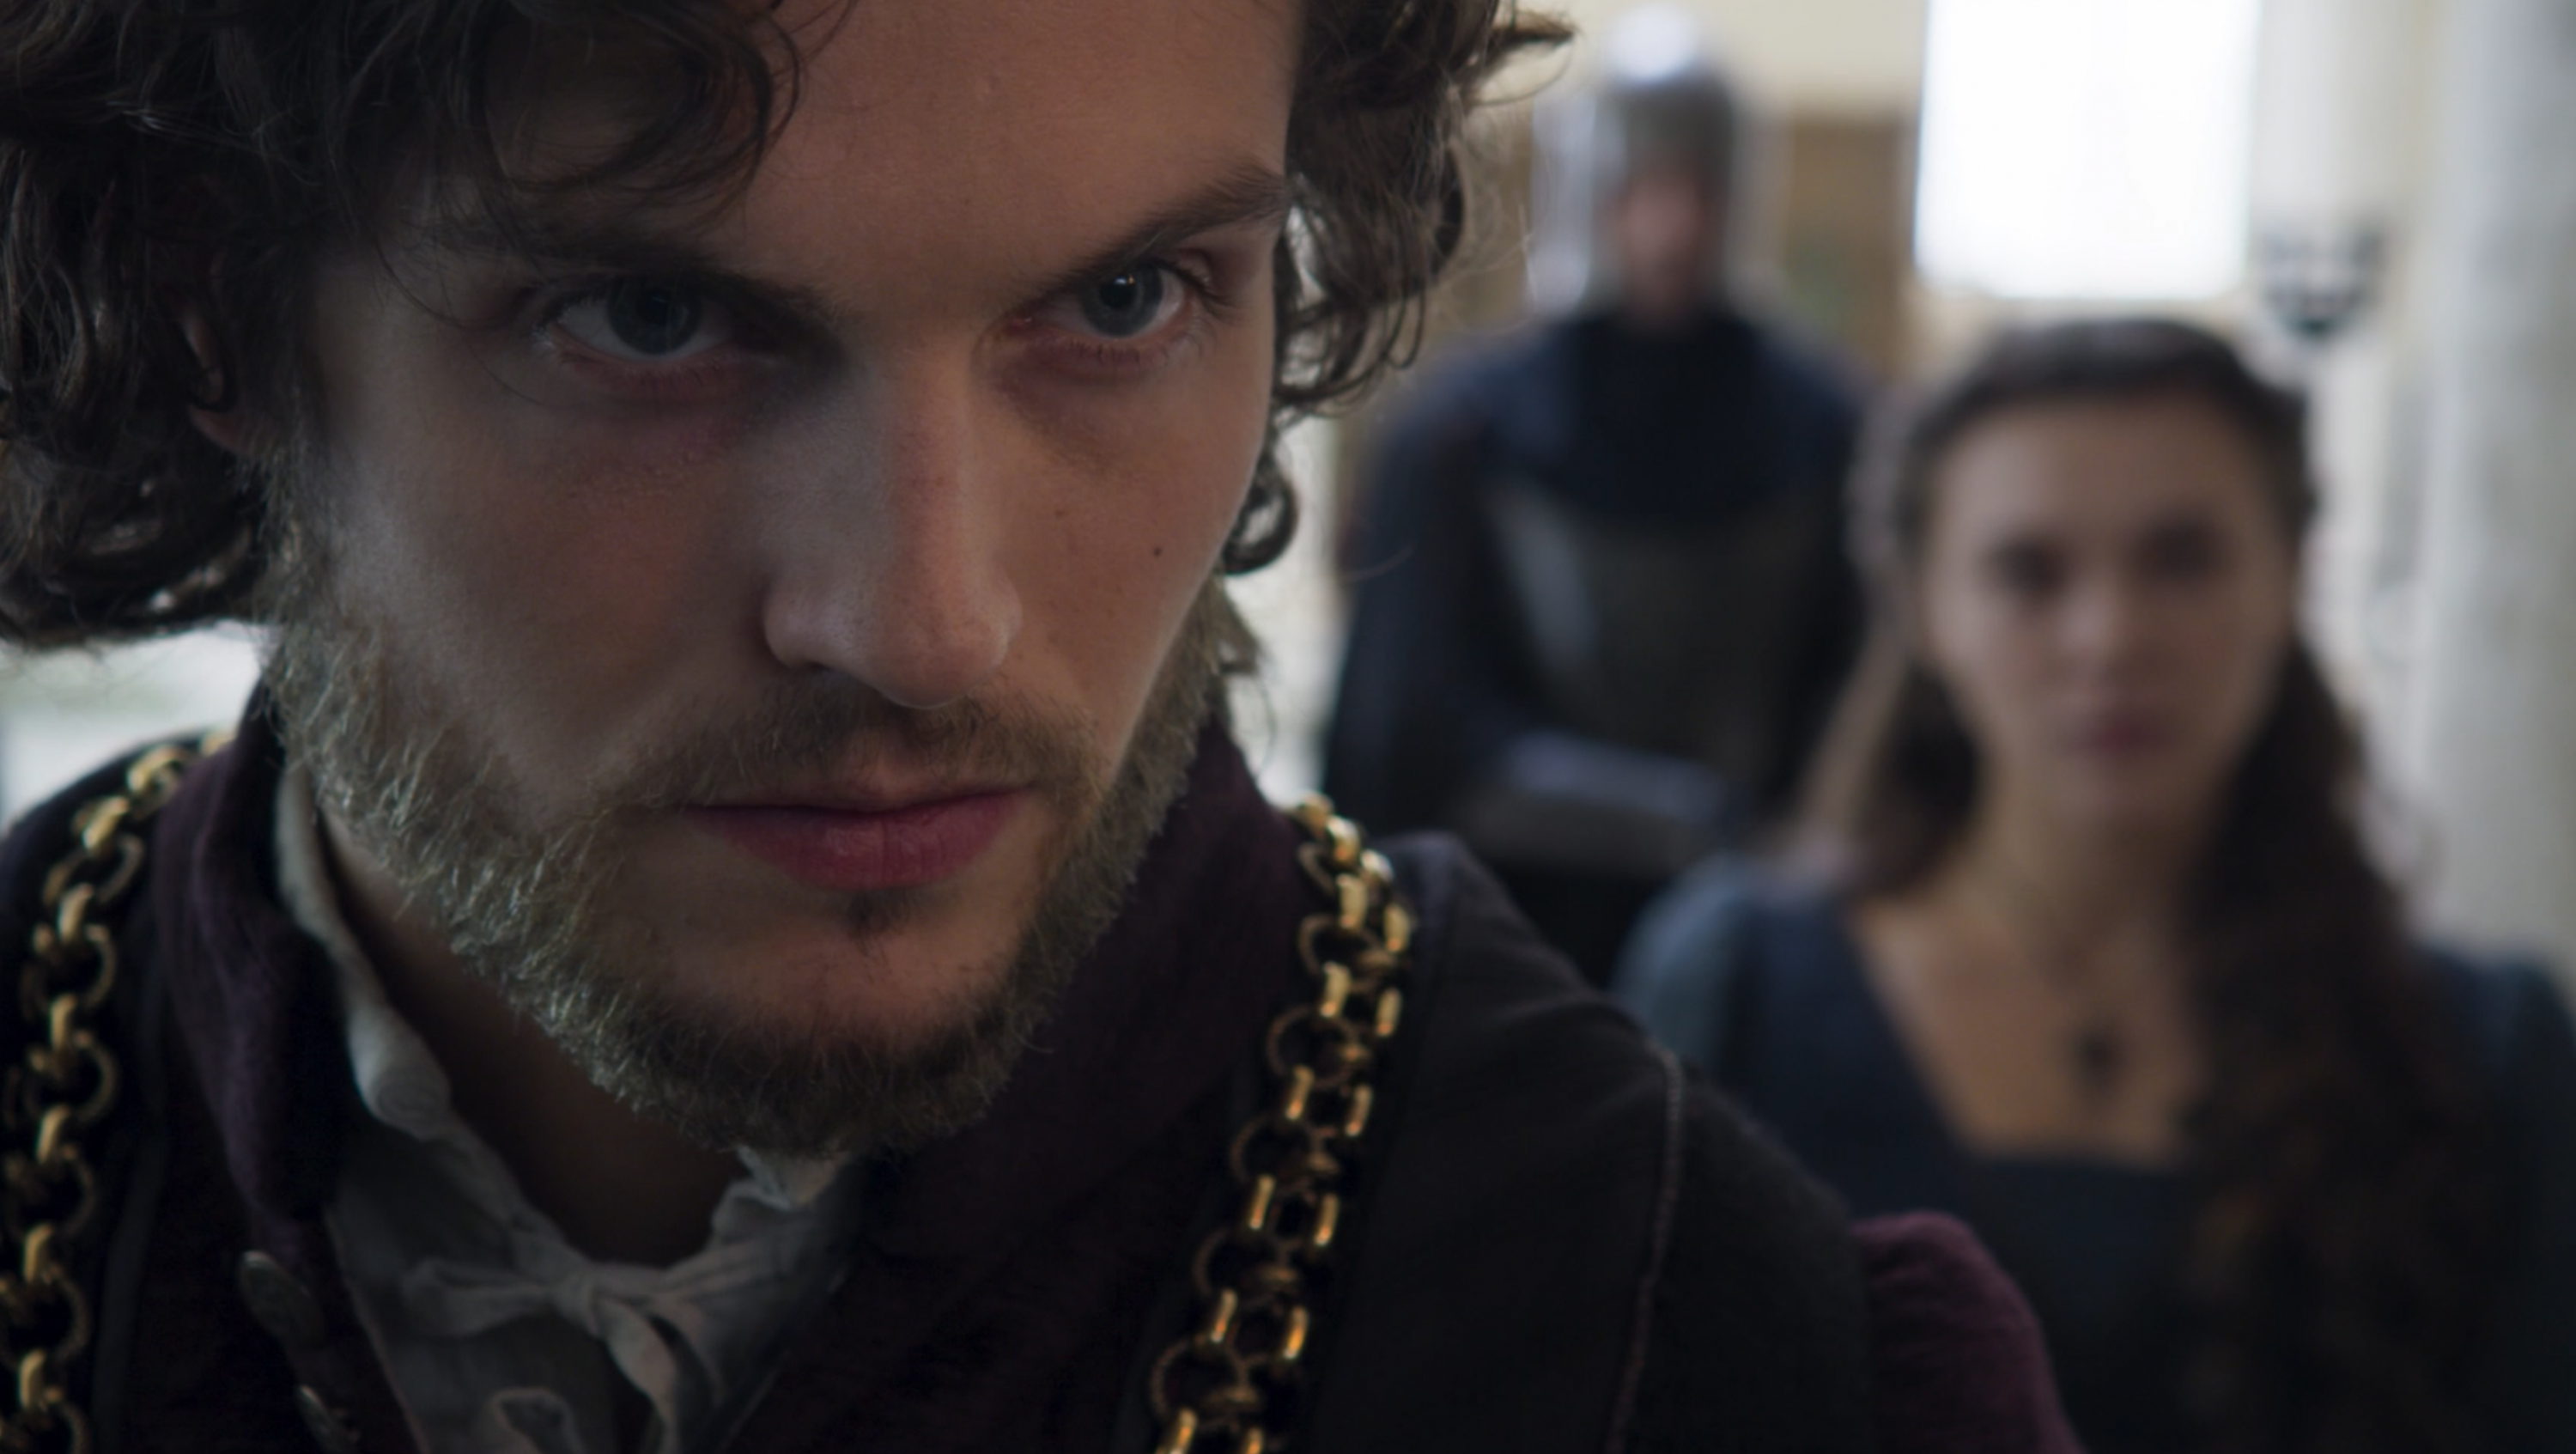 Lorenzo de Medici - Daniel Sharman in Medici: The Magnificent